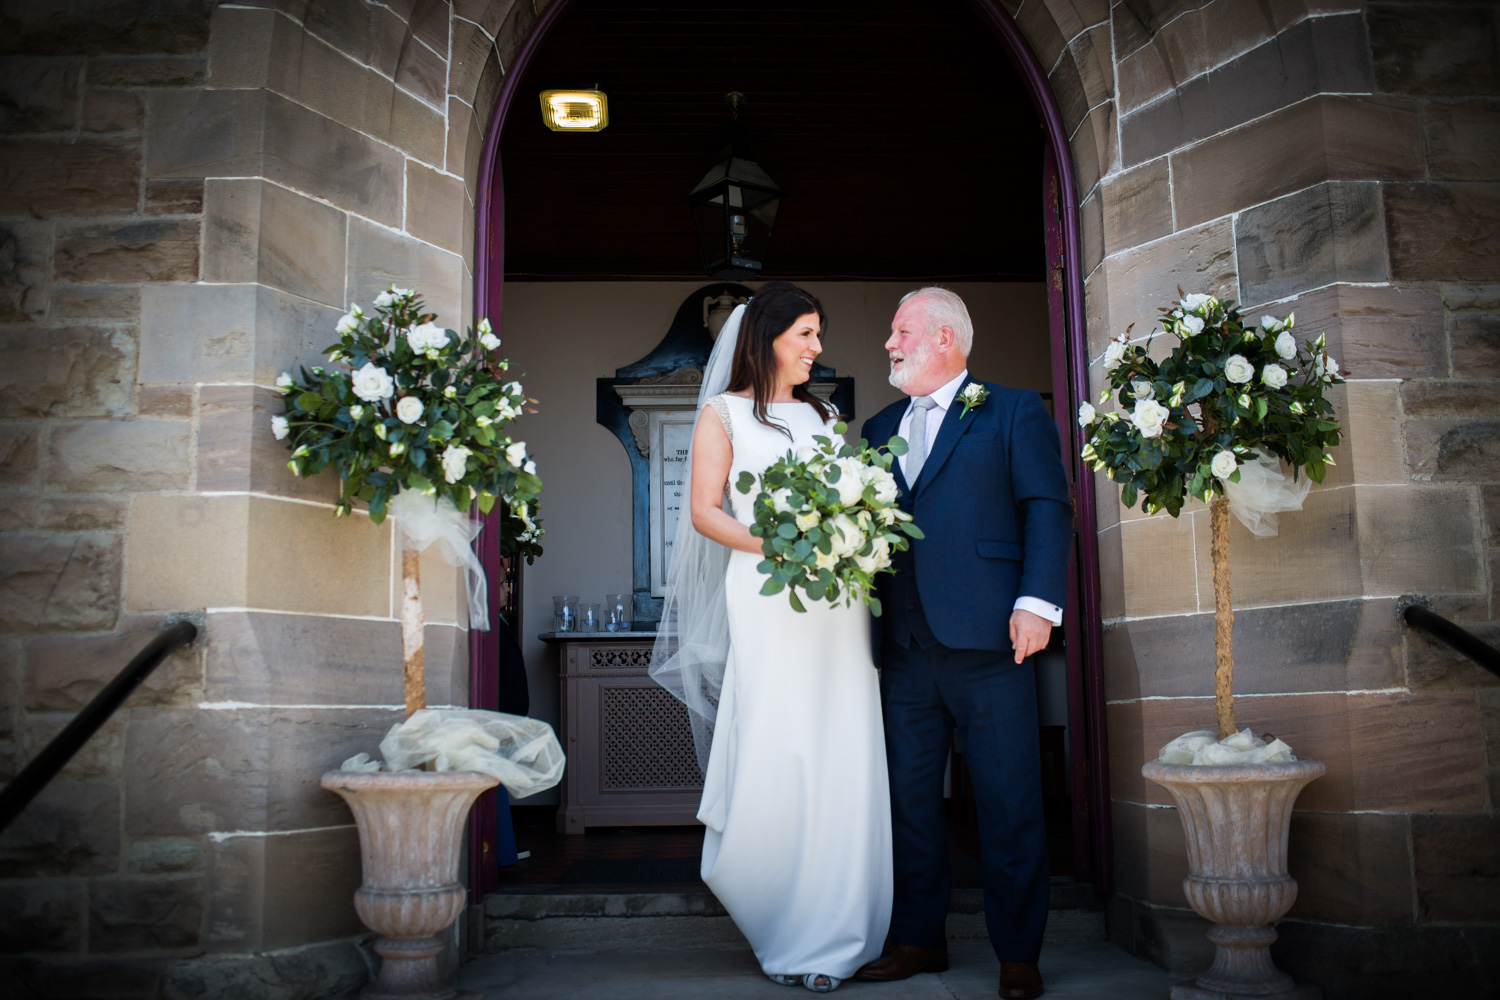 Mark_Barnes_Northern_Ireland_wedding_photographer_Kilmore_House_Wedding_photography_Kilmore_House_wedding_photographer-16.jpg